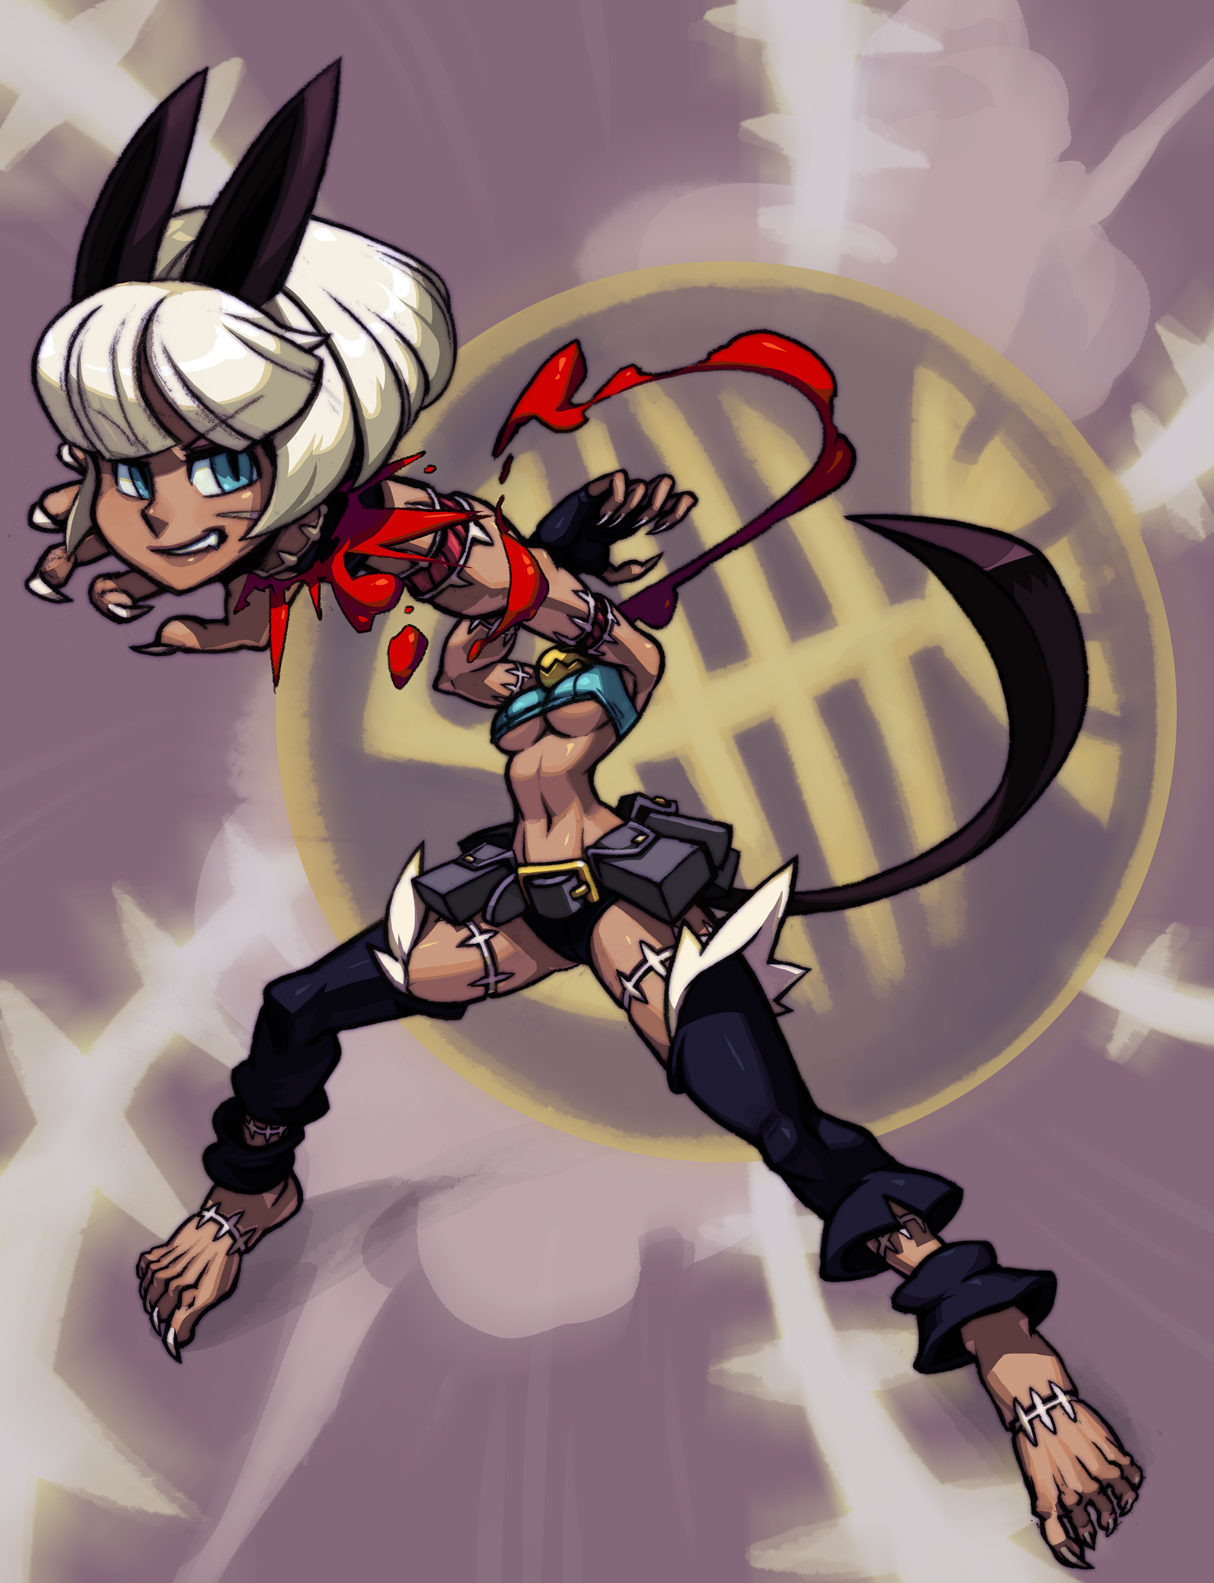 Msfortune_skullgirls.jpg